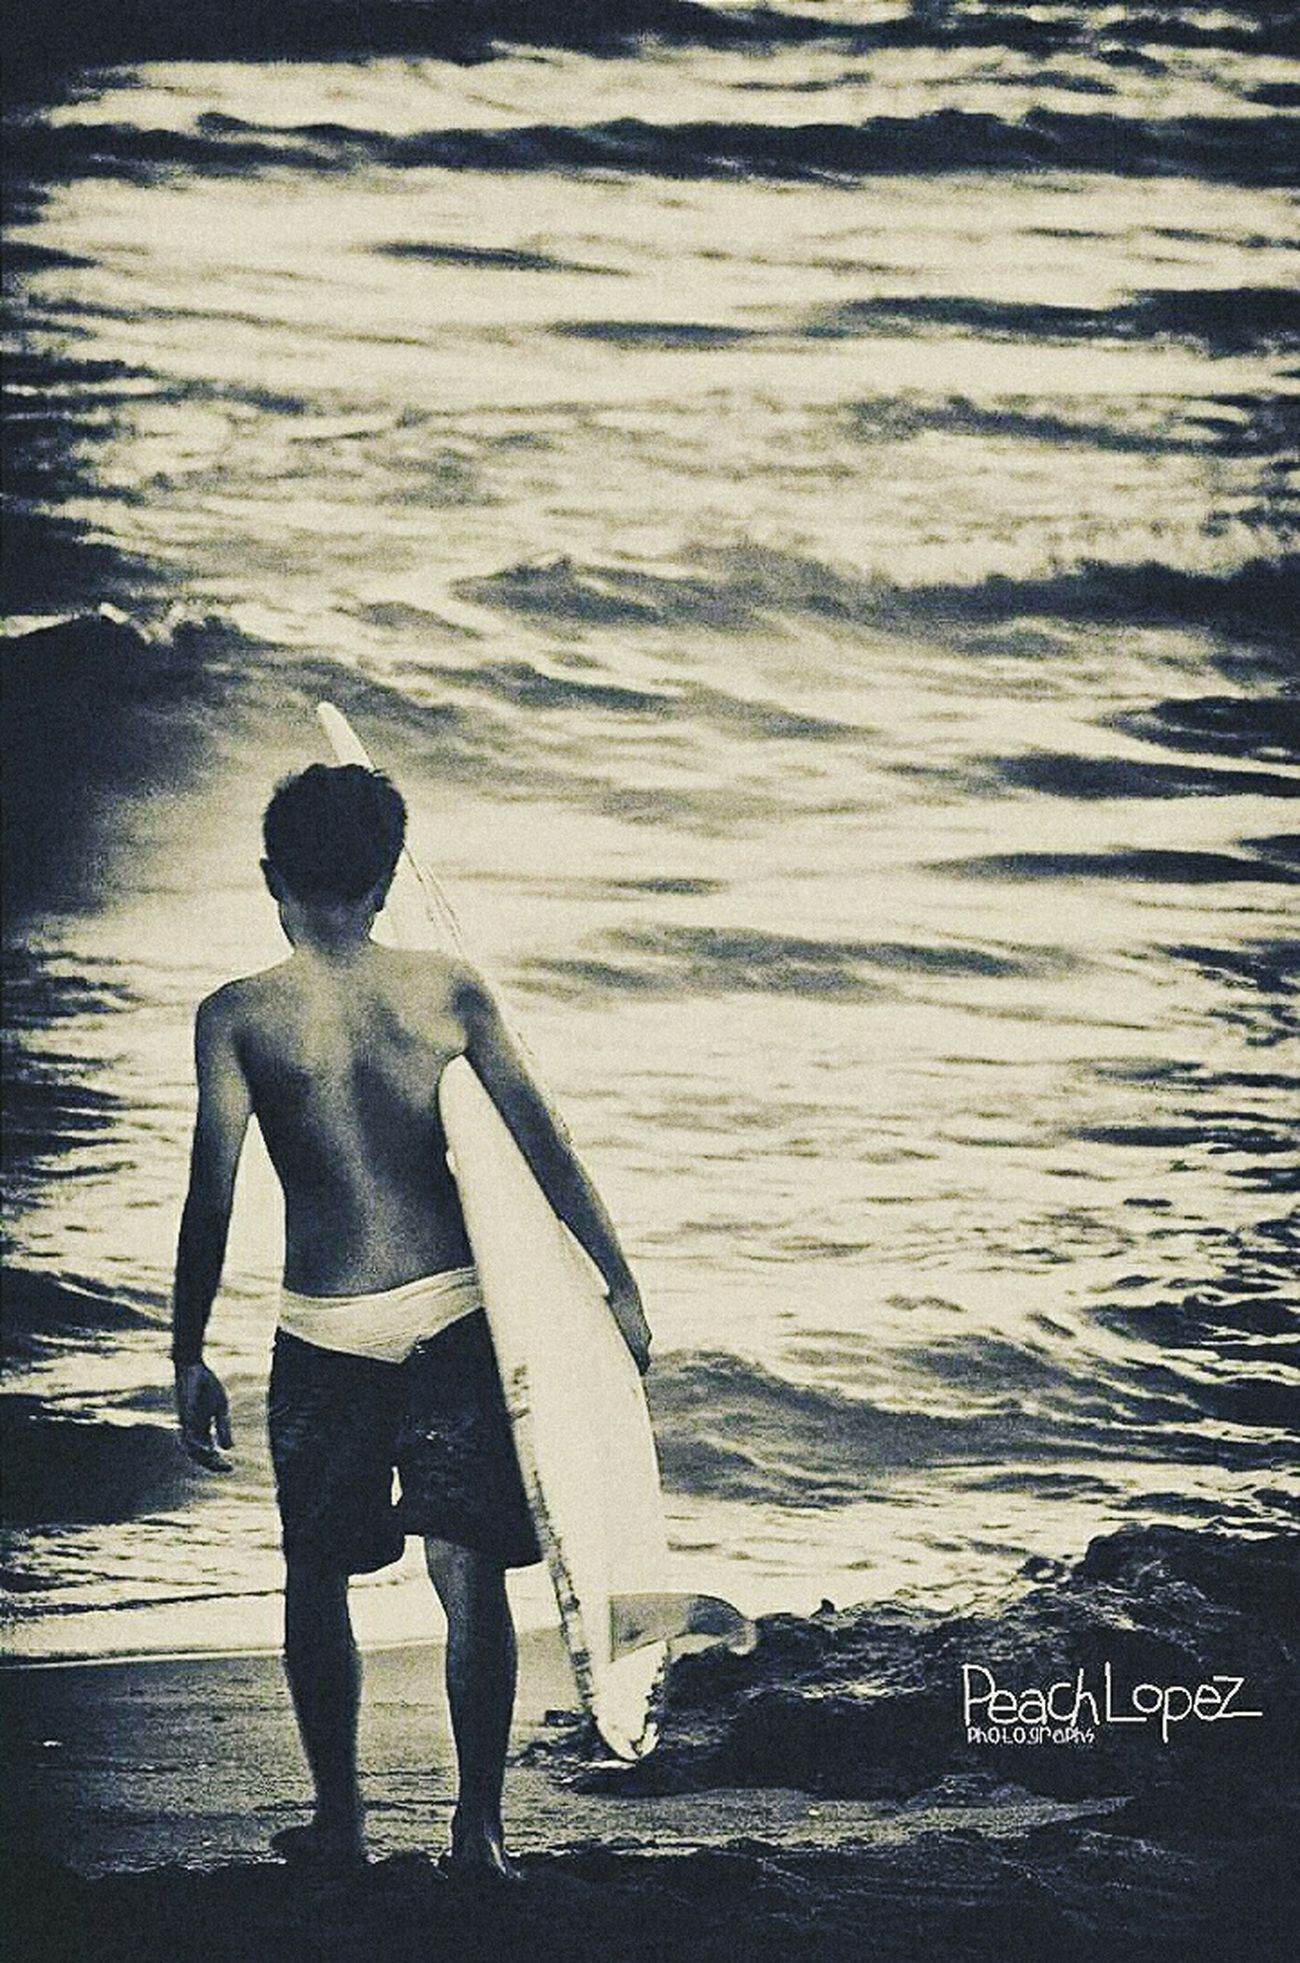 Young surfer. Showcase: November Launion Water Surfing Surf Beach